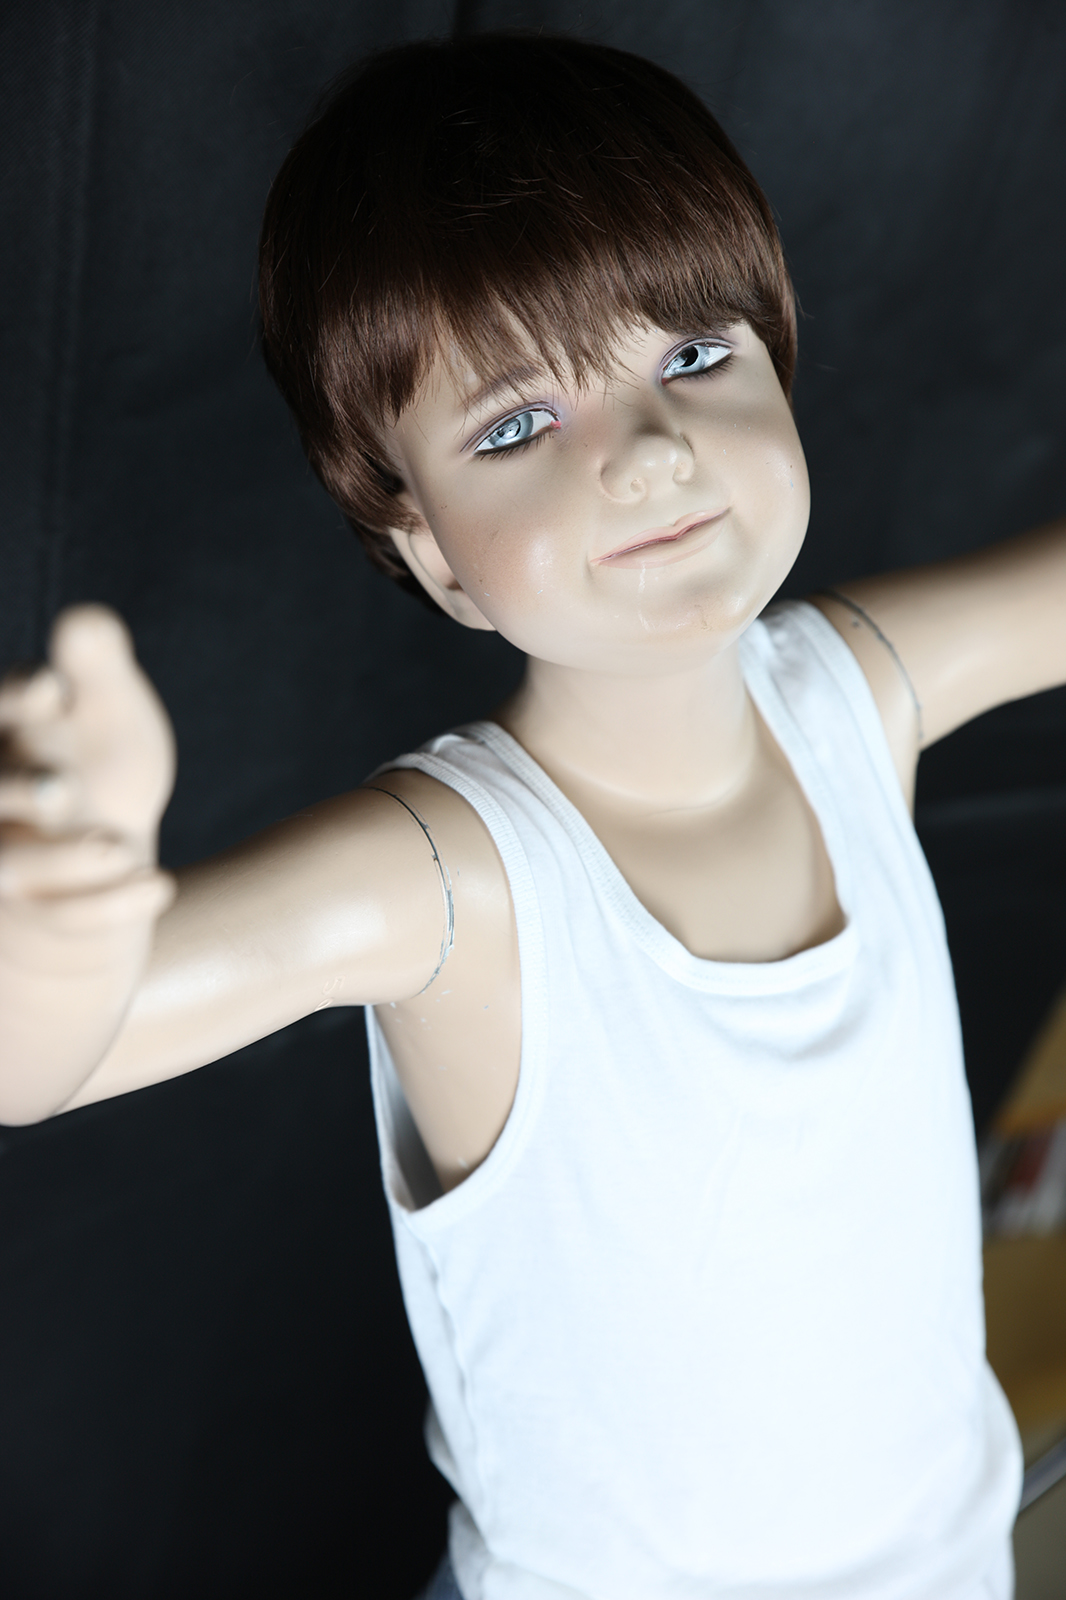 Schaufensterpuppe Kind Kind Junge Schaufensterpuppe Mannequin Child Boy 116 5 6